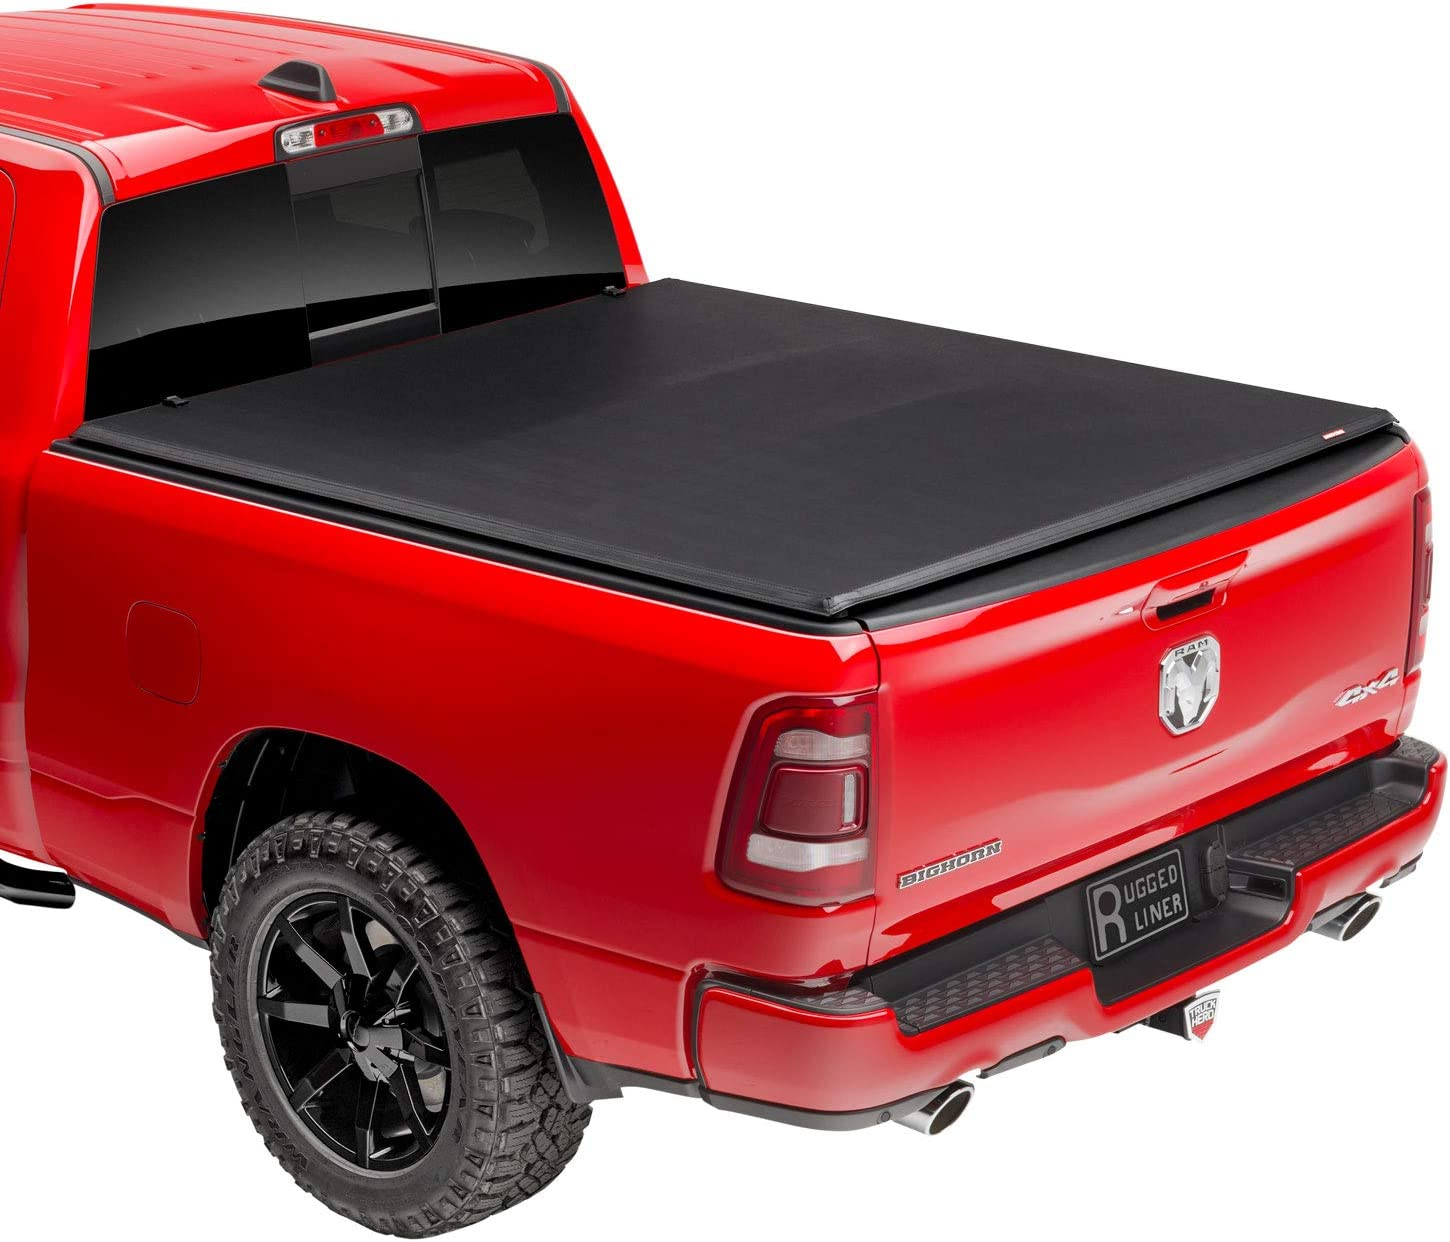 Amazon Com Rugged Liner Premium Soft Folding Truck Bed Tonneau Cover Fcd802 Fits 2002 2008 Dodge Ram 1500 8 0 Bed 96 Automotive